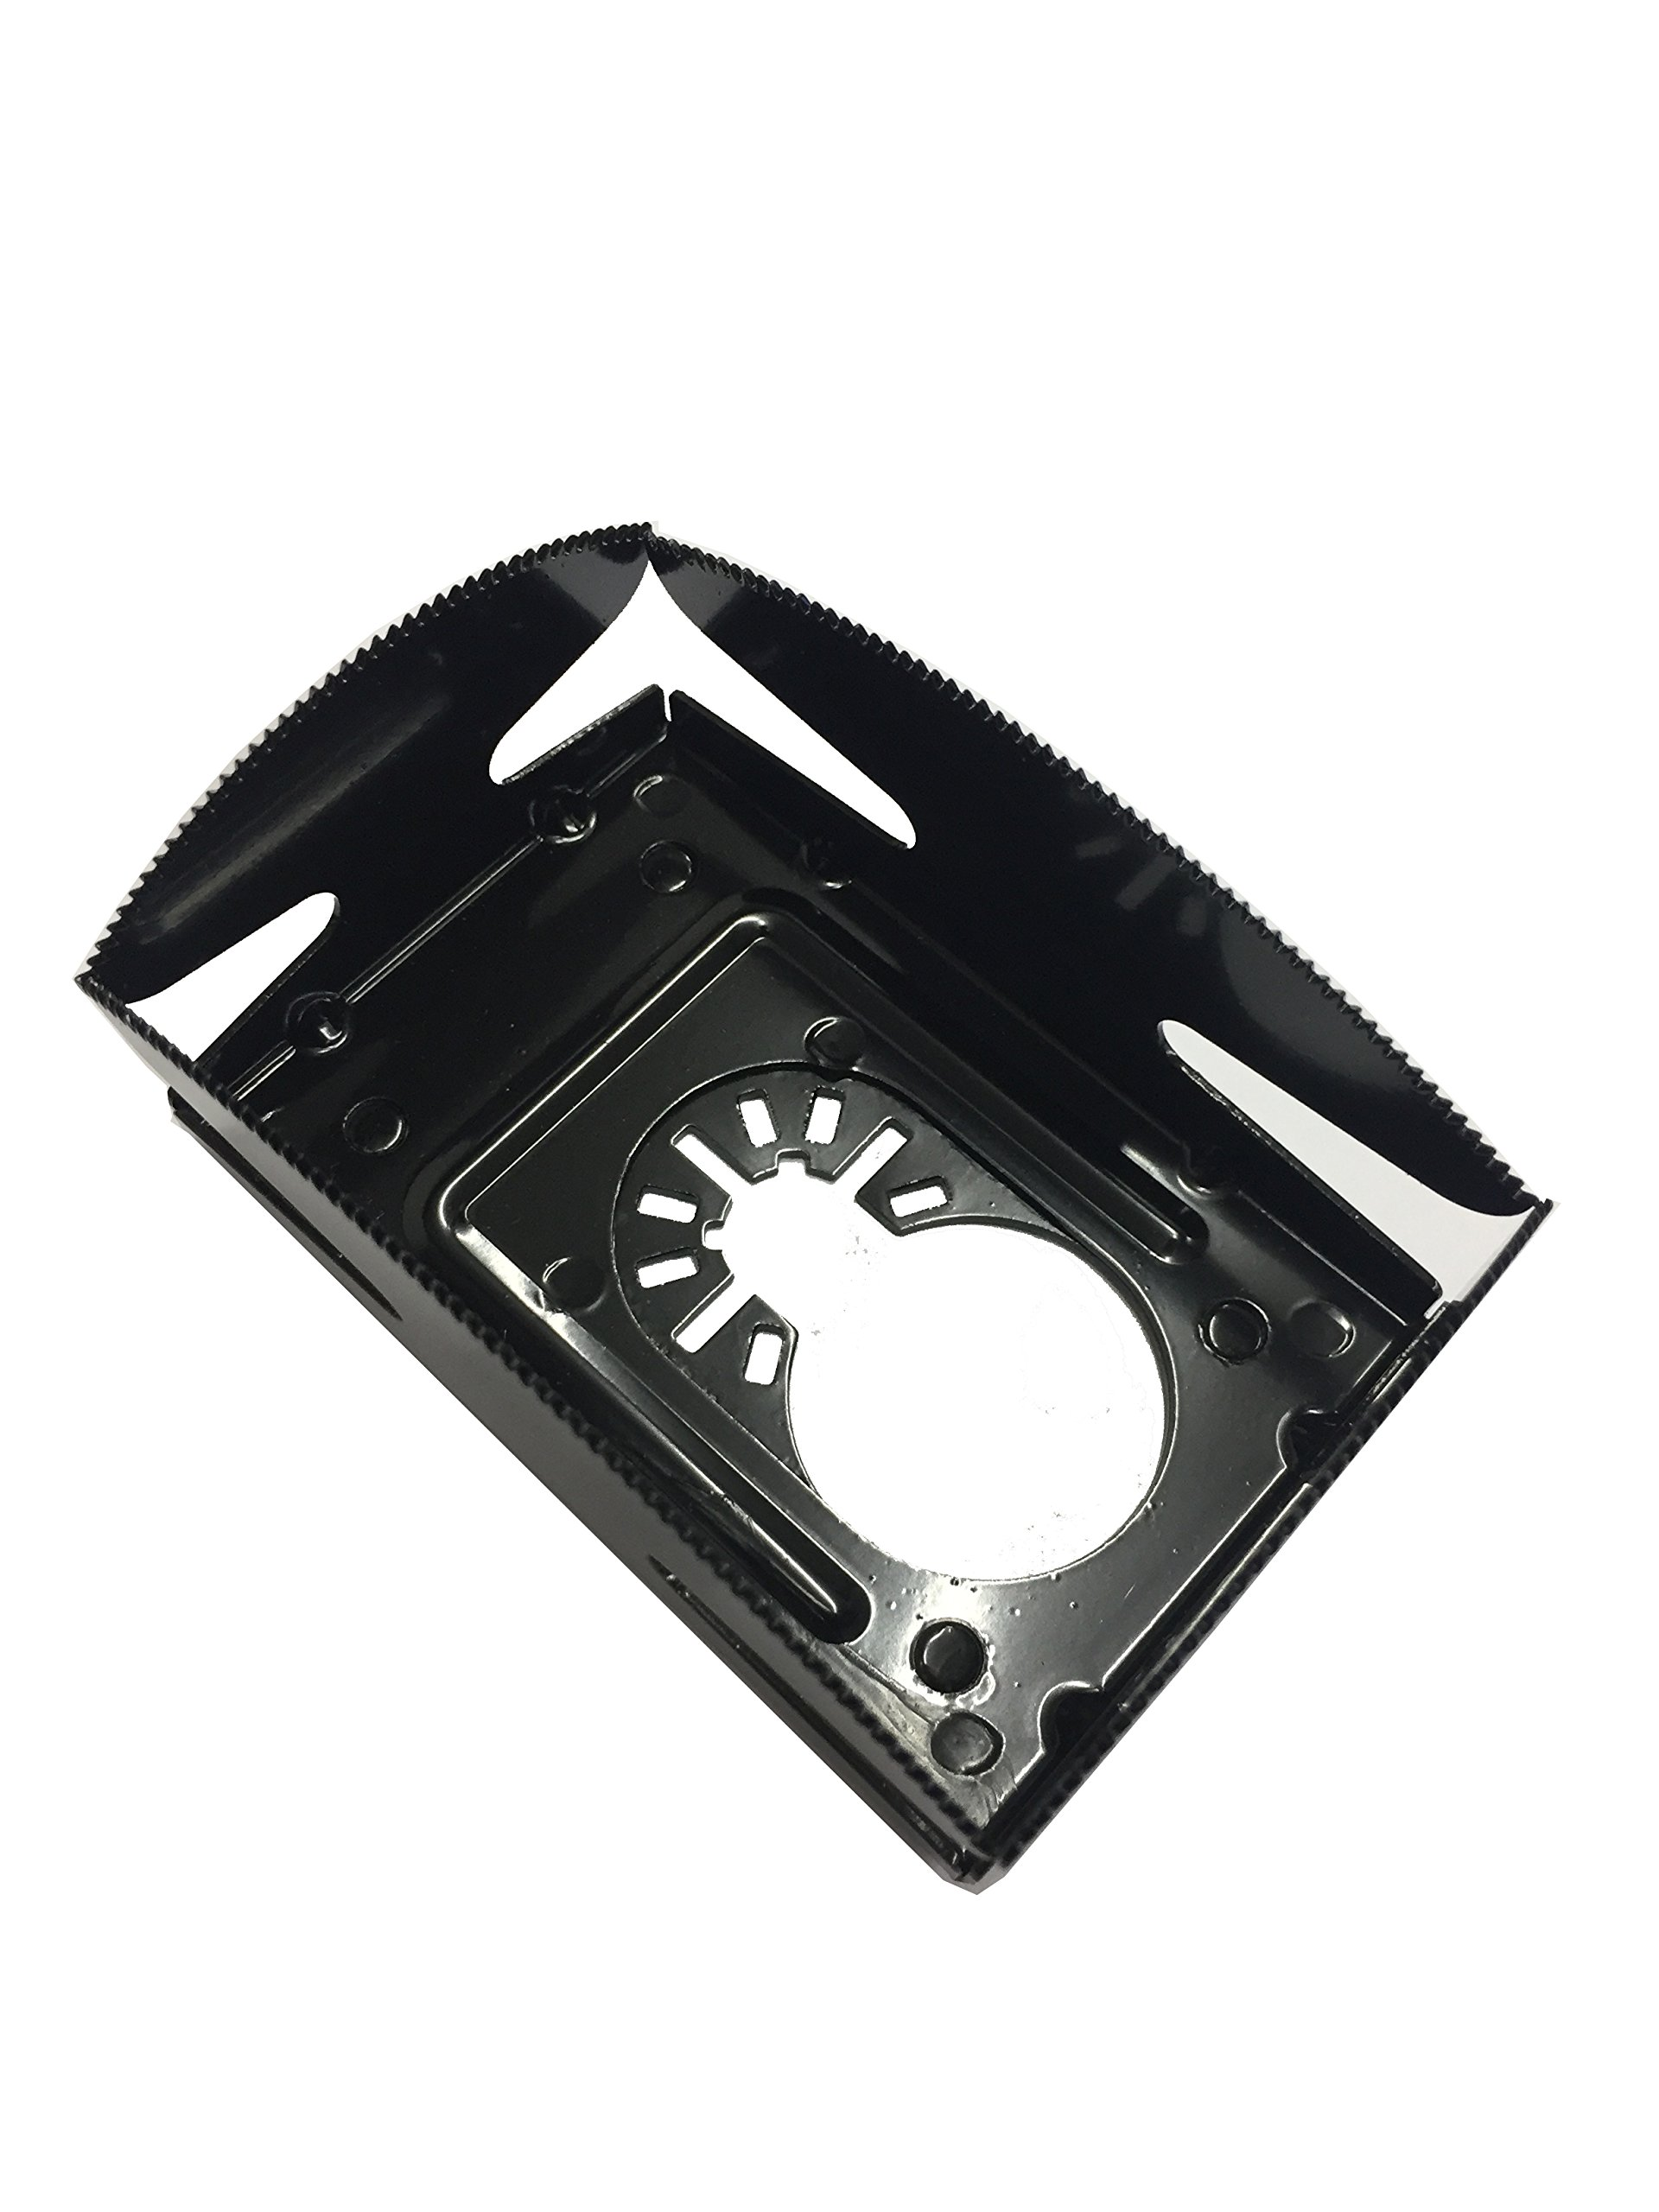 Qbit SQ1000-S-C Power Oscillating Multi-Tool Blade Saw for Metal 1-Gang Outlet Box by Qbit (Image #2)